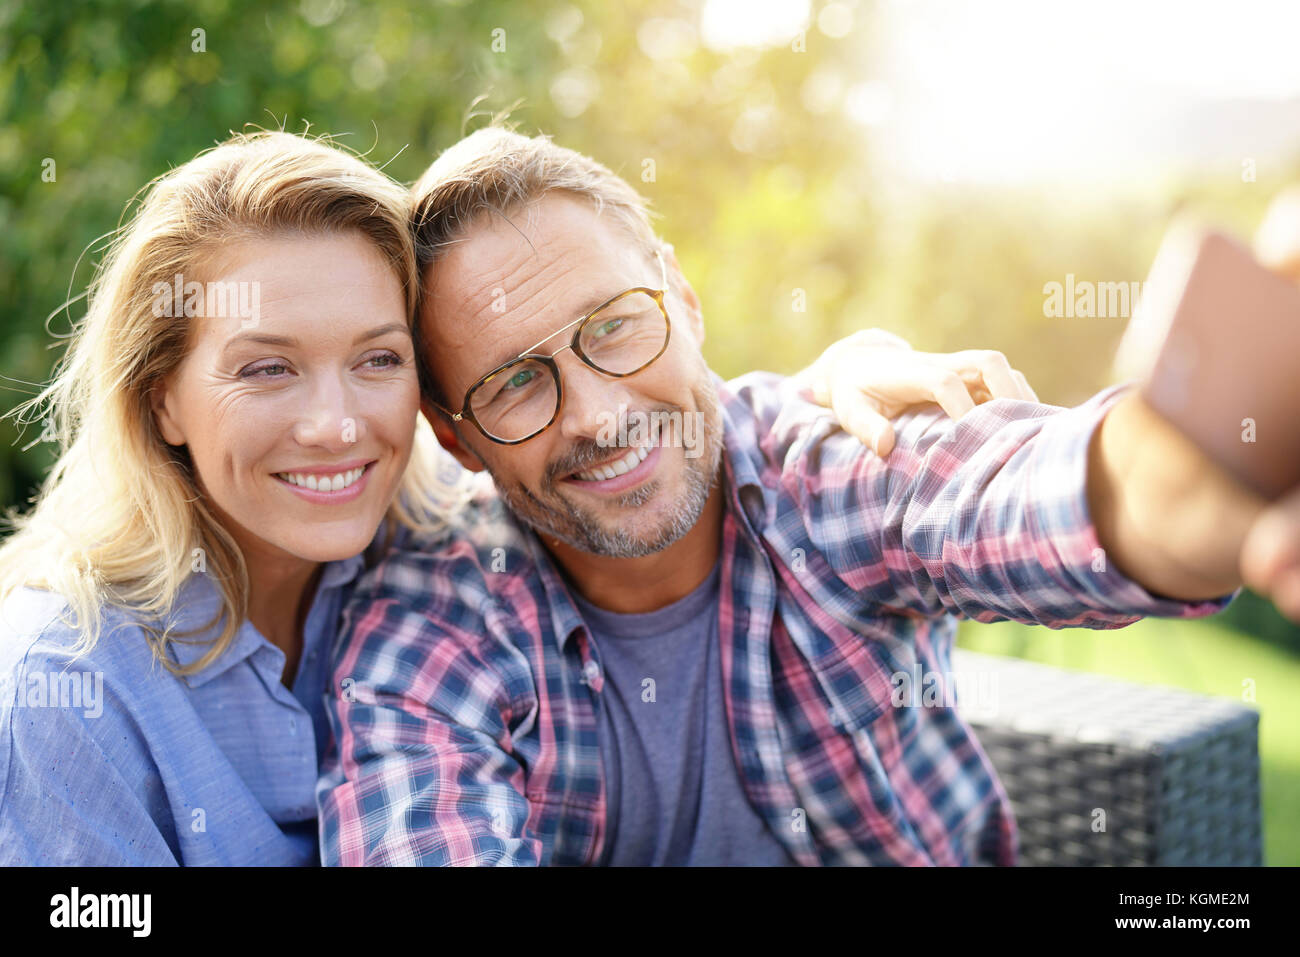 Portrait of young couple taking photo selfies Photo Stock